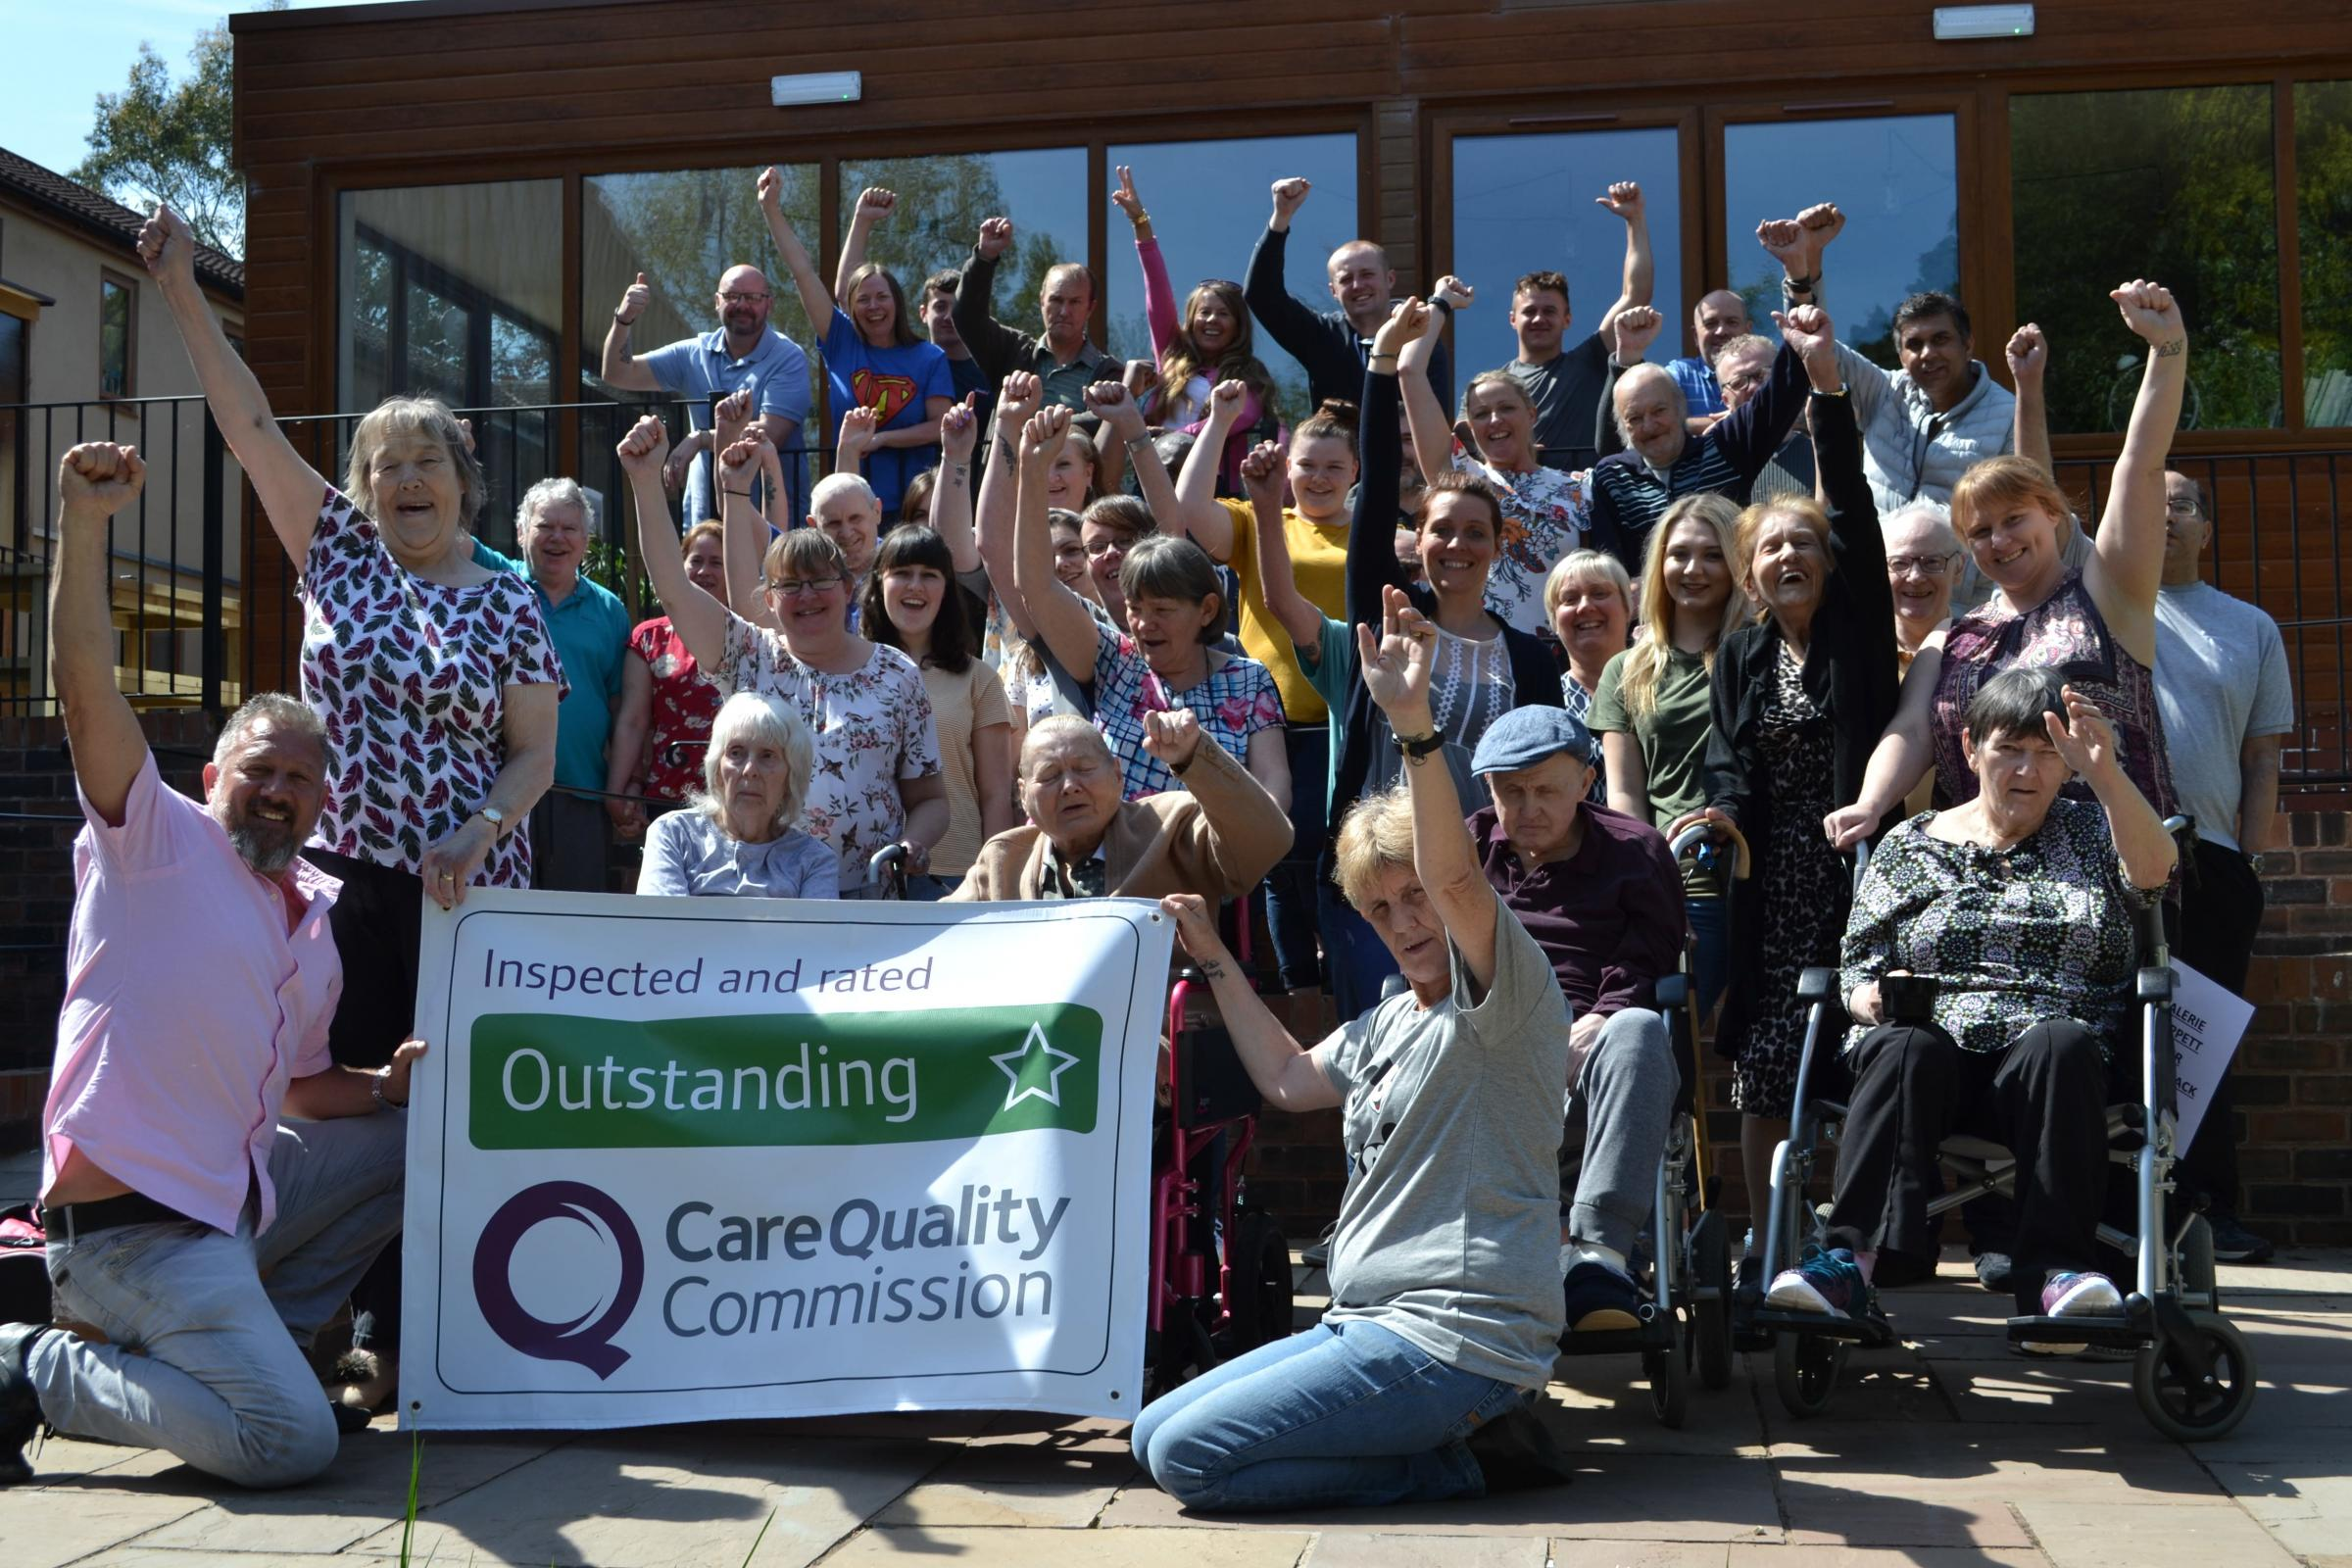 Staff and residents at Casa Mia Care Home celebrating their 'outstanding' CQC rating